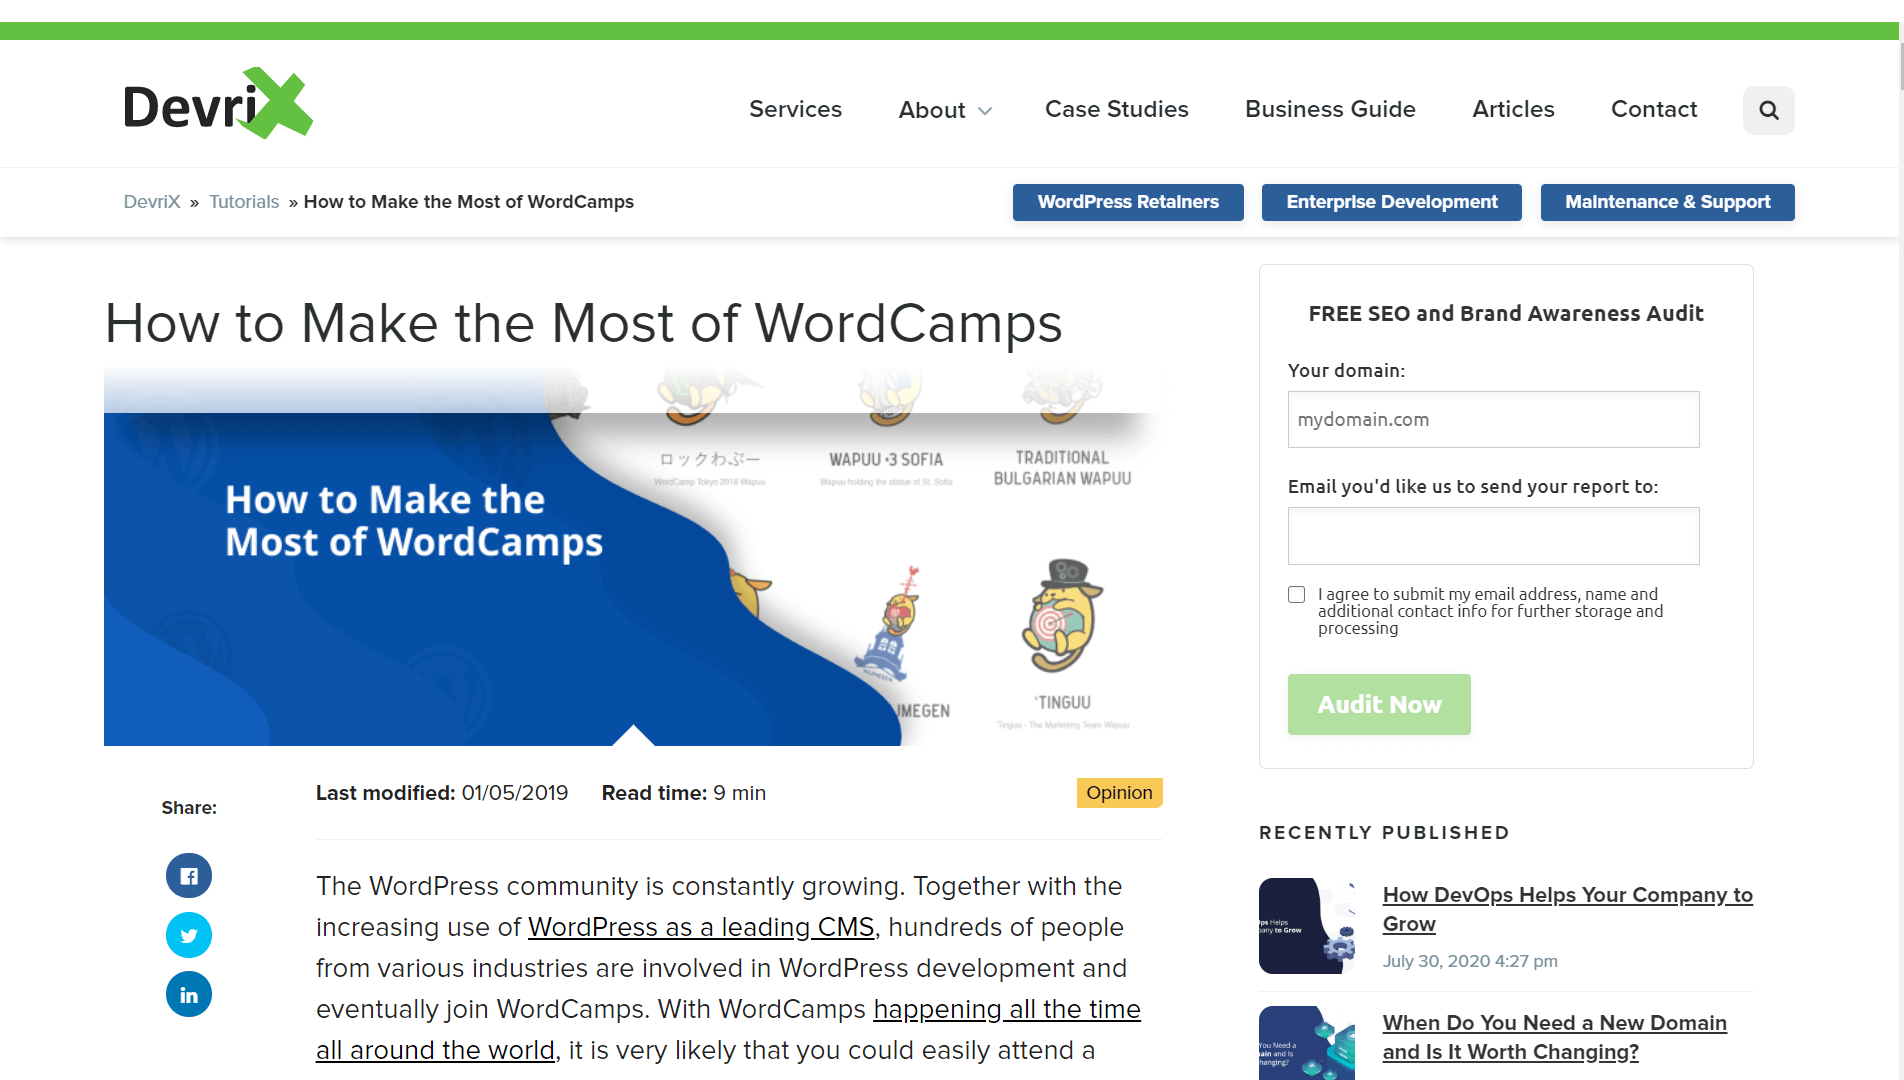 How to Make the Most of WordCamps